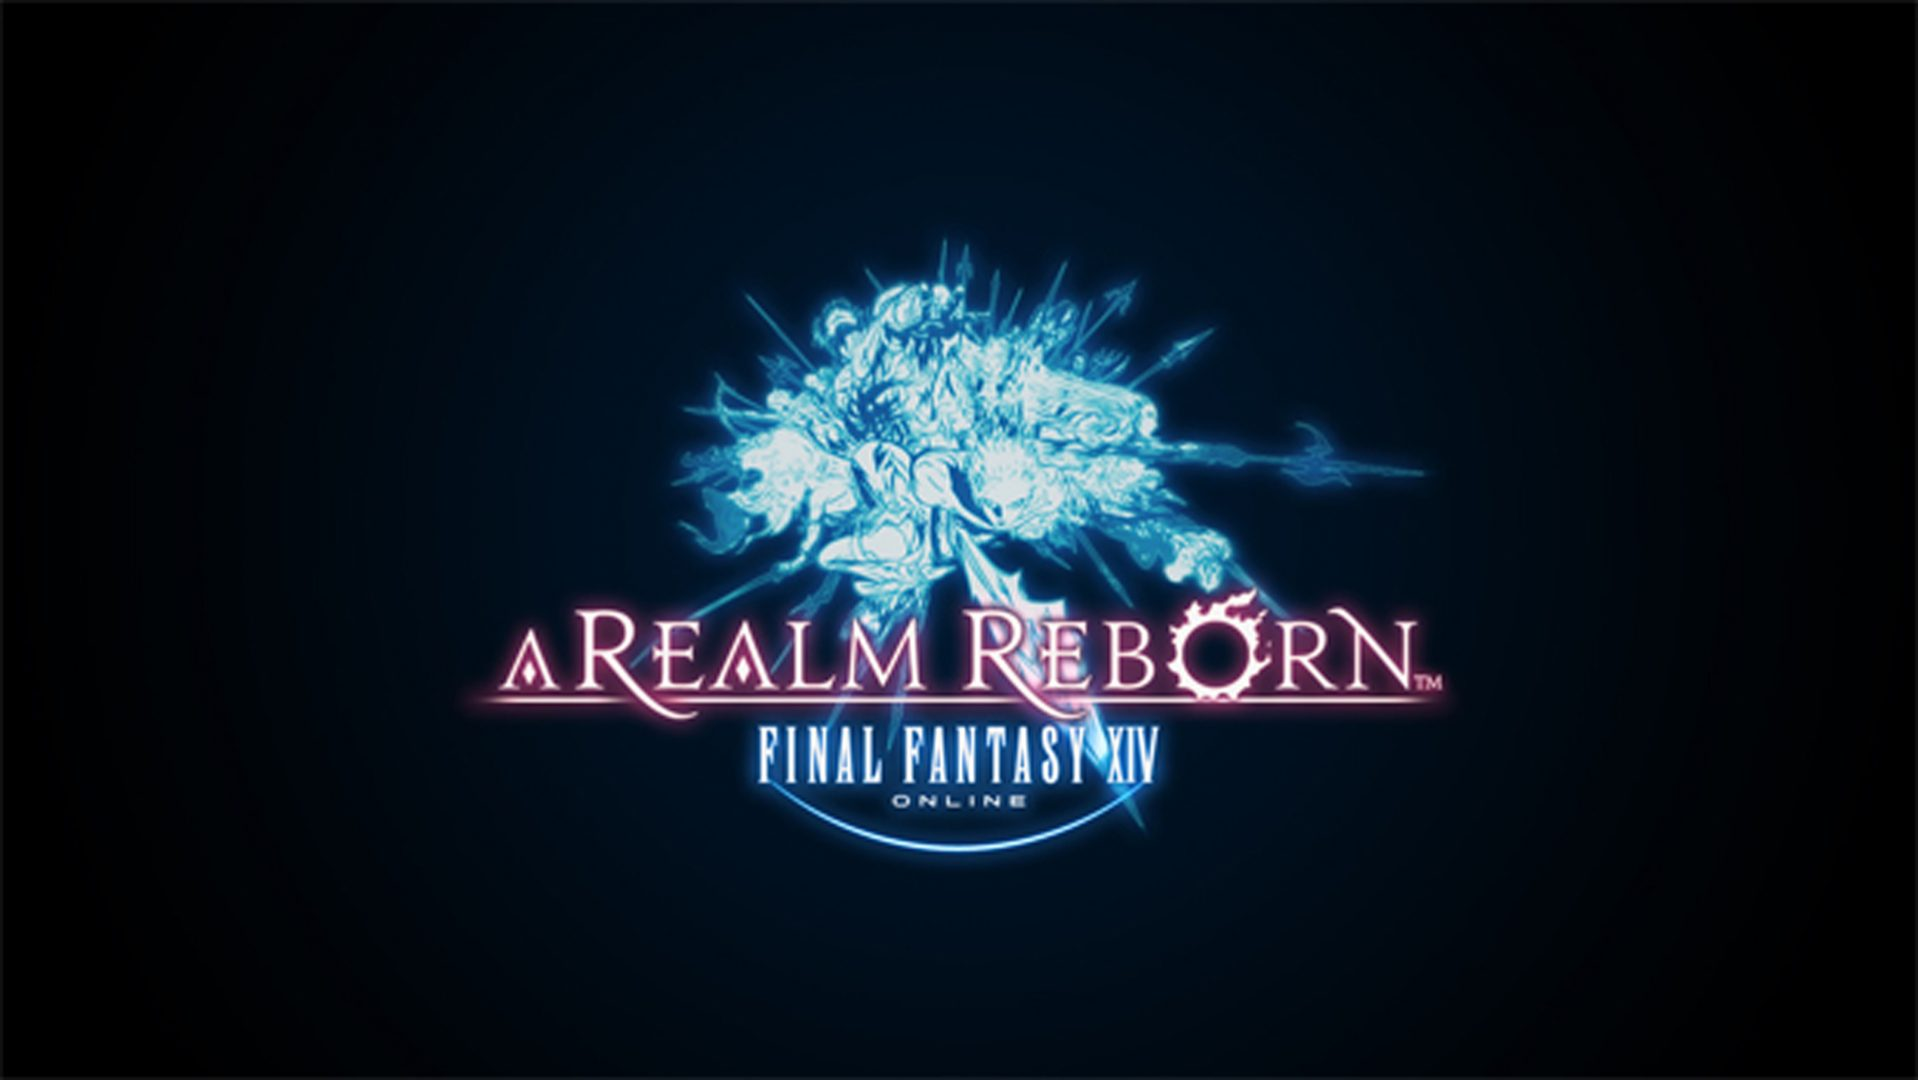 Final Fantasy XIV: A Realm Reborn Update 2.5 Trailer